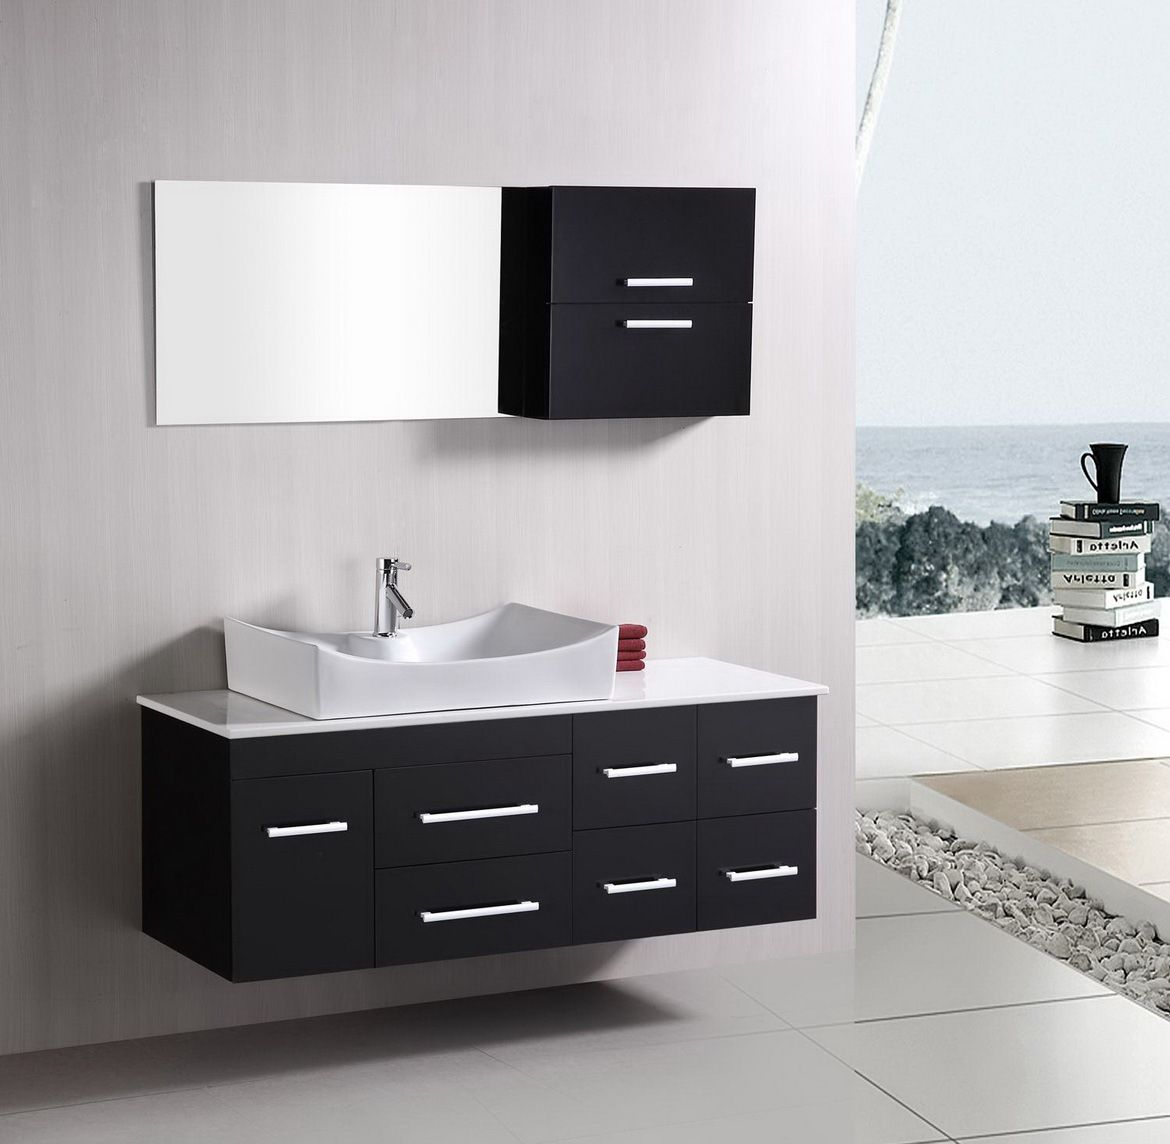 Small contemporary bathroom vanities design ideas for the house pinterest contemporary Design bathroom vanity cabinets